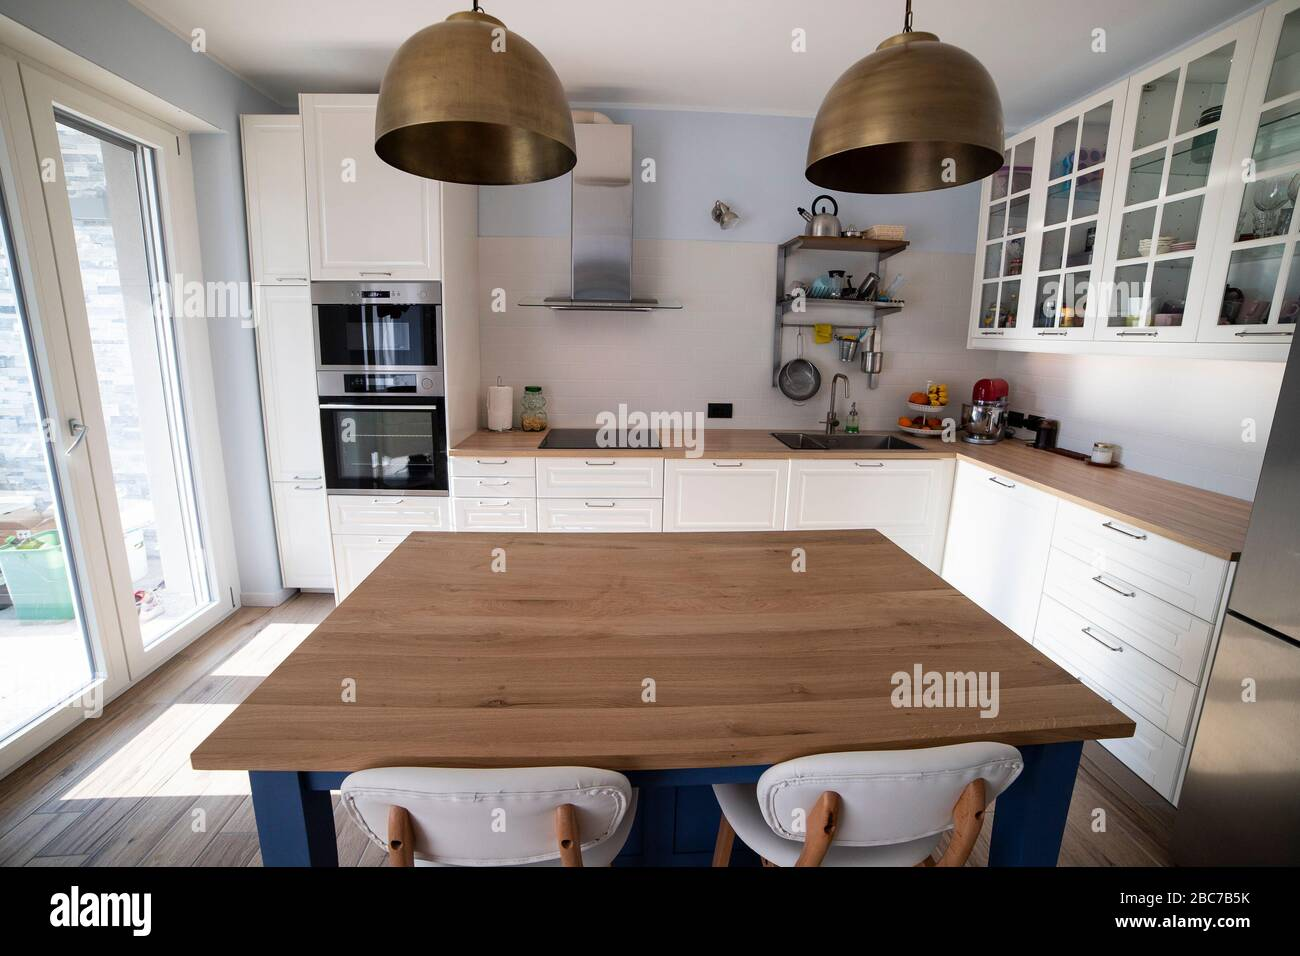 White Bright Kitchen With Blue Island And Double Brass Pendant Lights Central View With Kitchen Island In The Foreground Stock Photo Alamy